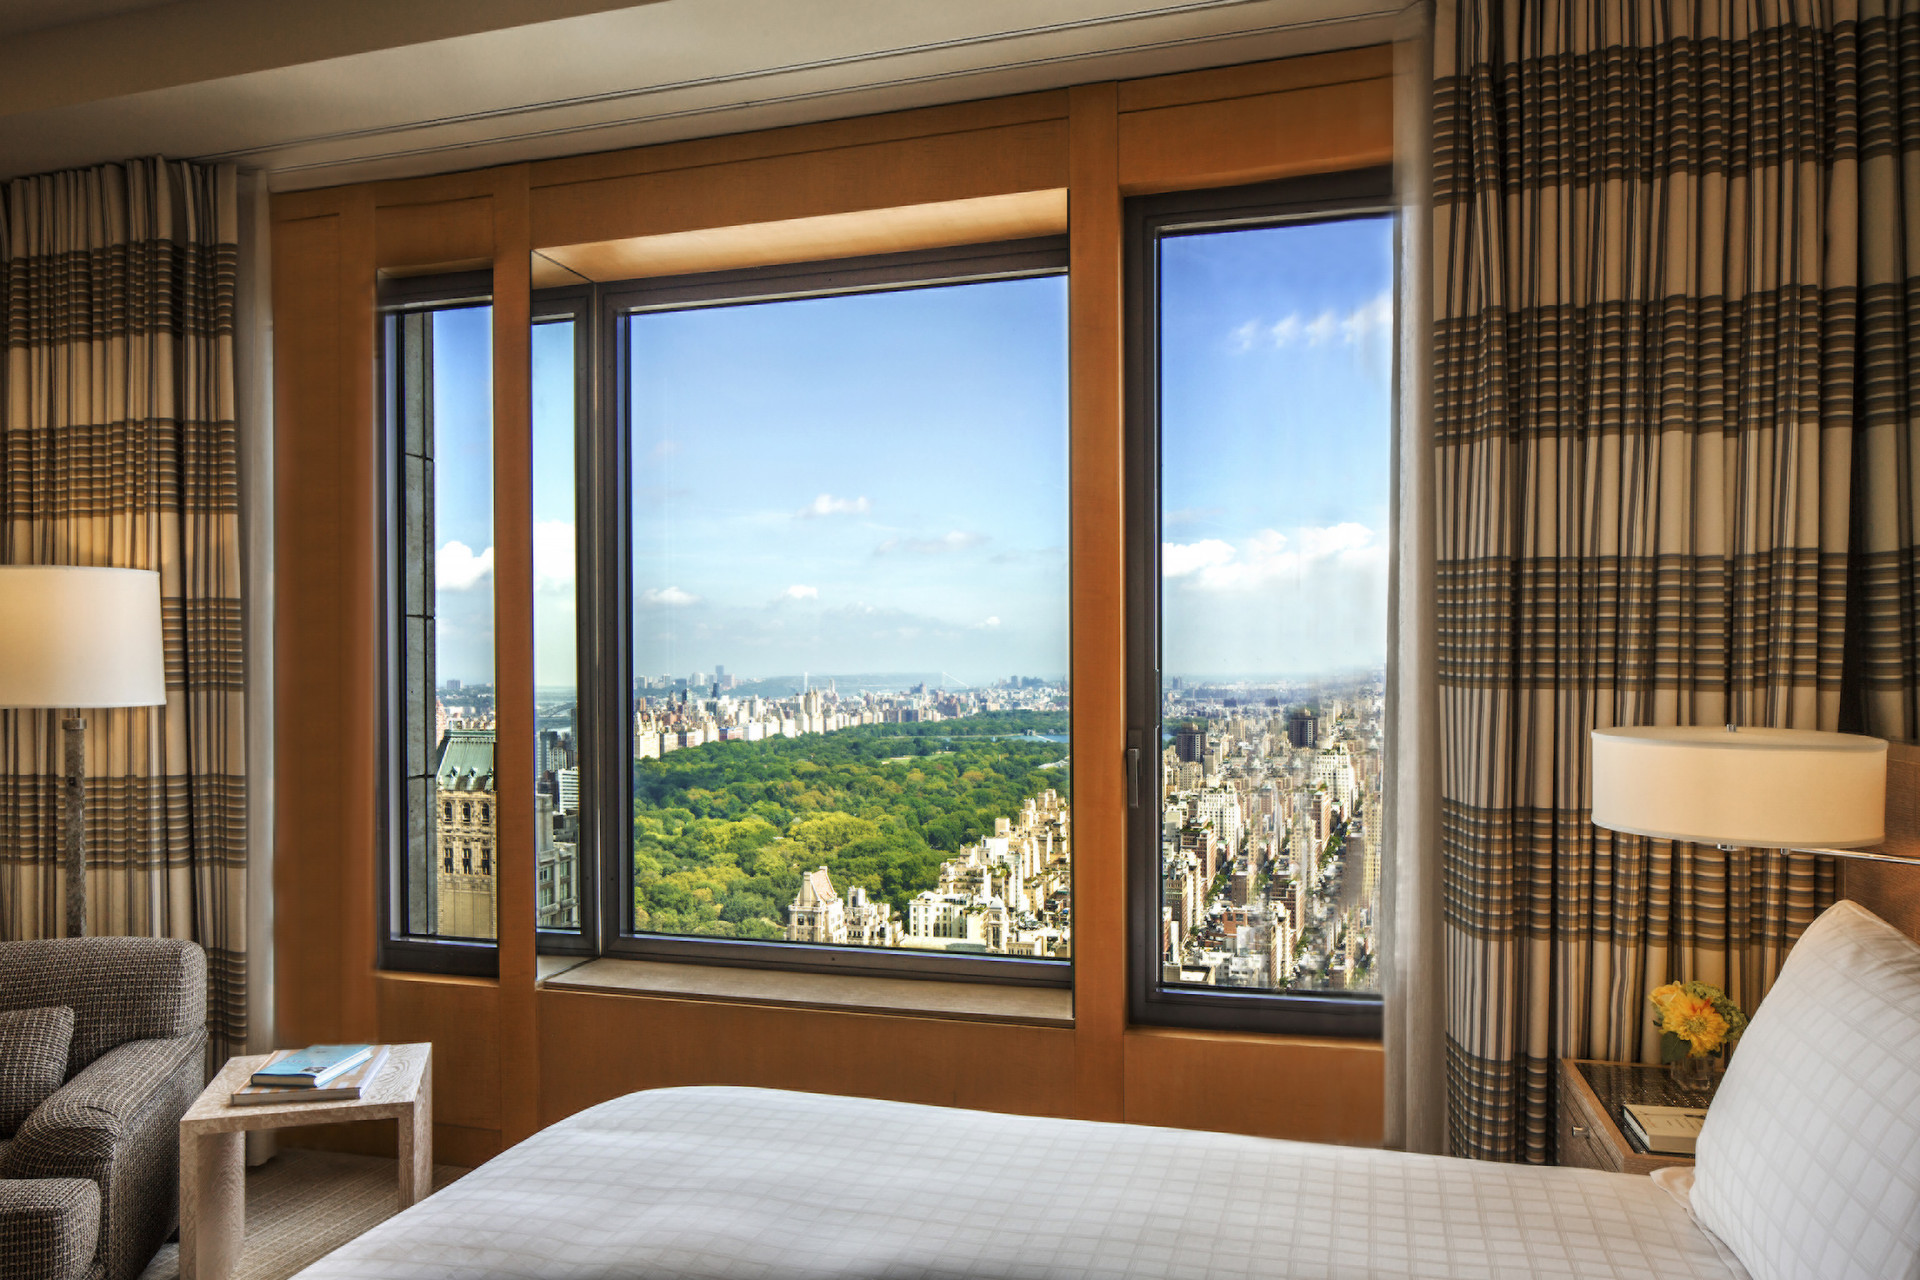 The best hotels with breathtaking views in NYC